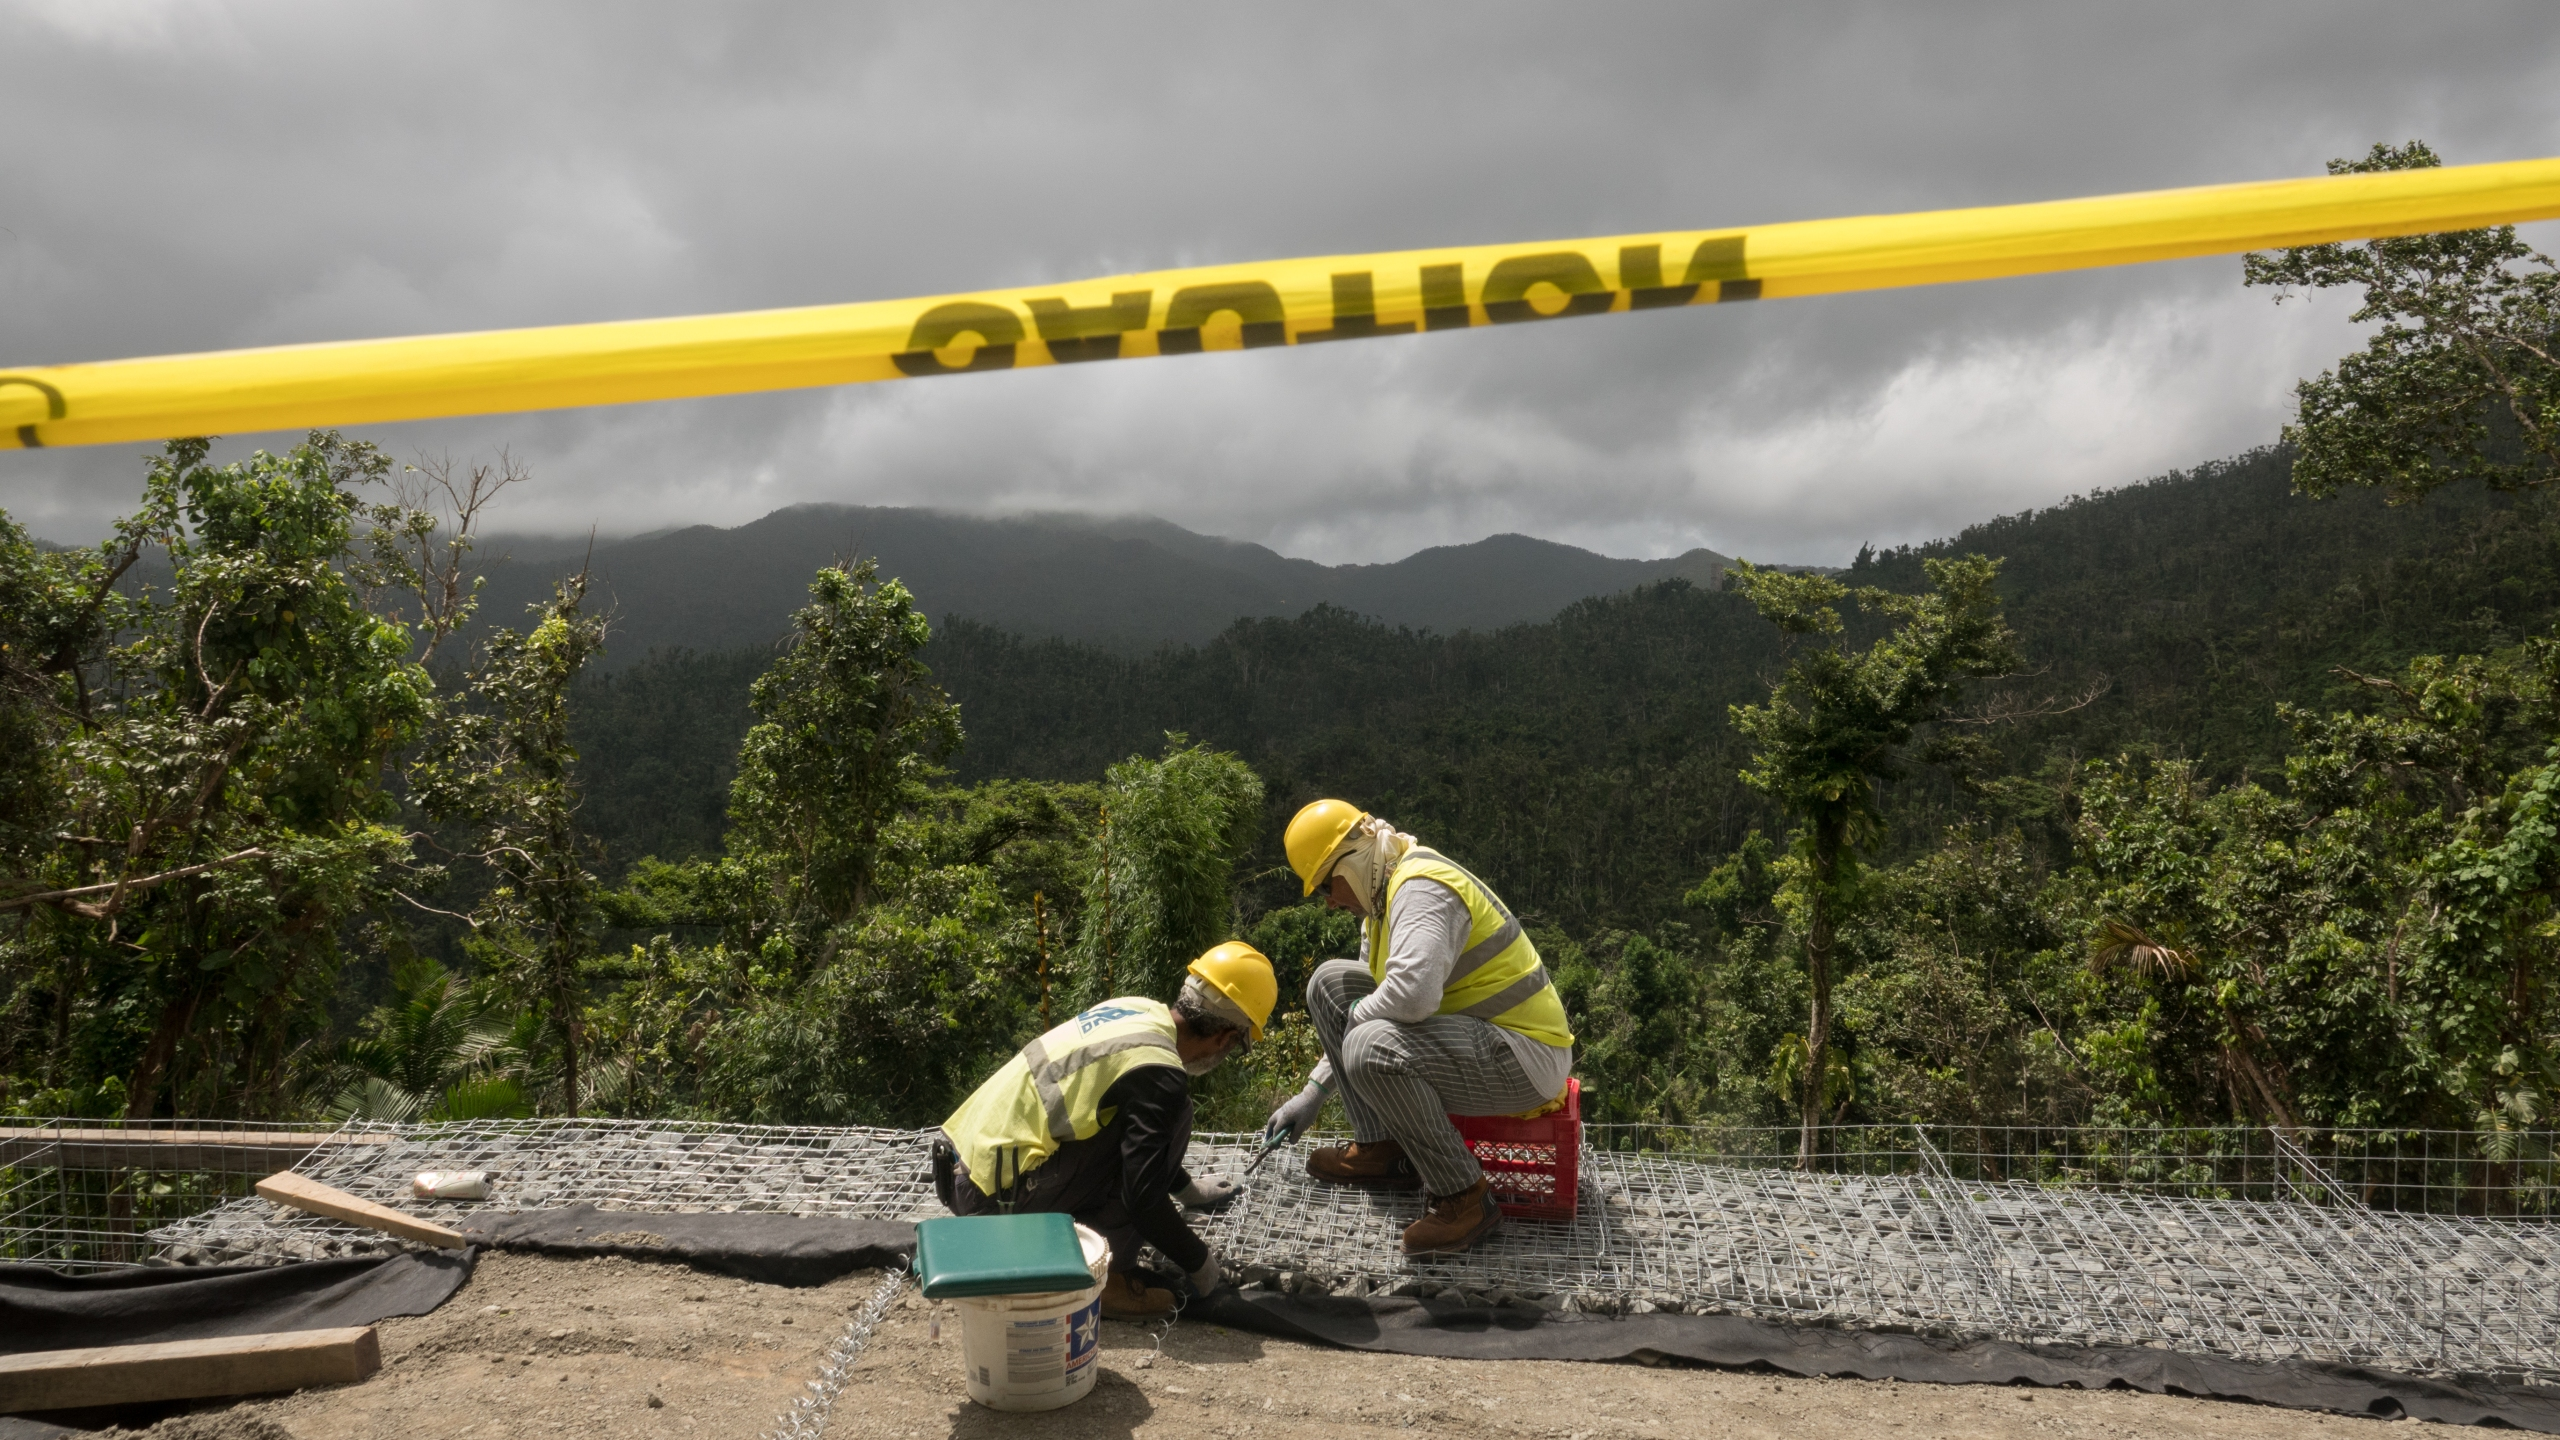 Crews work to repair the road to El Yunque Rain Forest, parts of which remain off-limits a year after Hurricane Maria hit, on Sept. 19, 2018. (Credit: Angel Valentin / Getty Images)